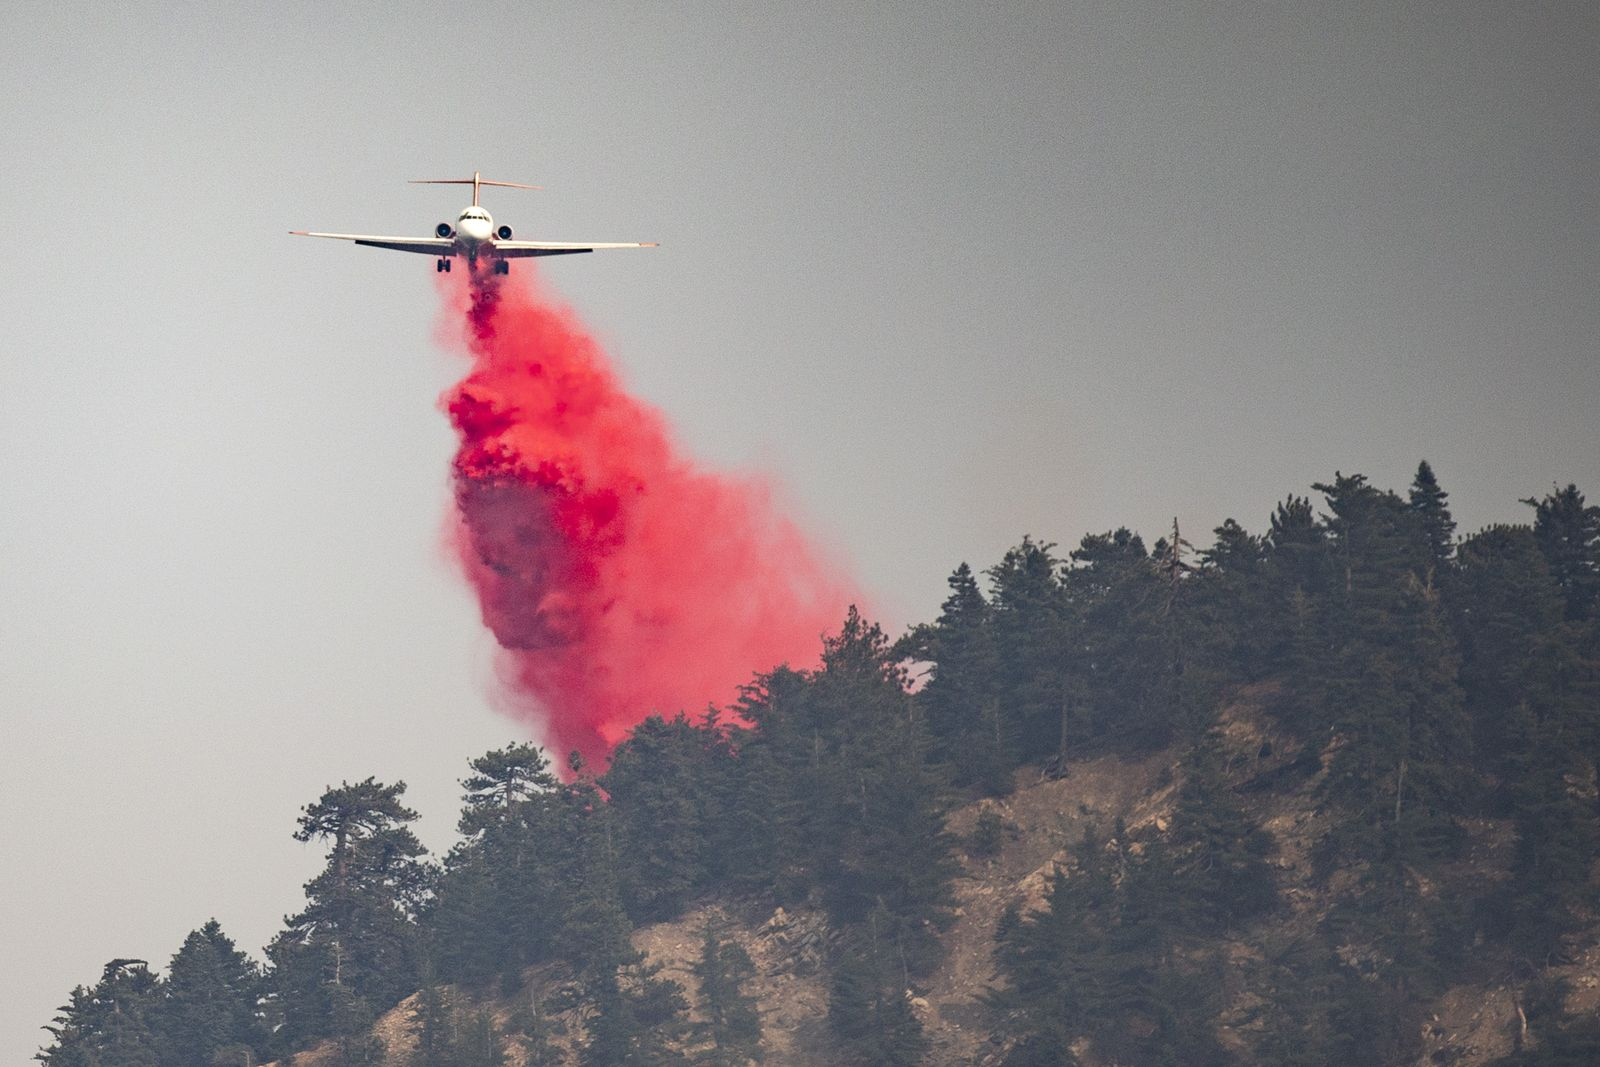 Bobcat Fire burns in Angeles National Forest, USA - 11 Sep 2020